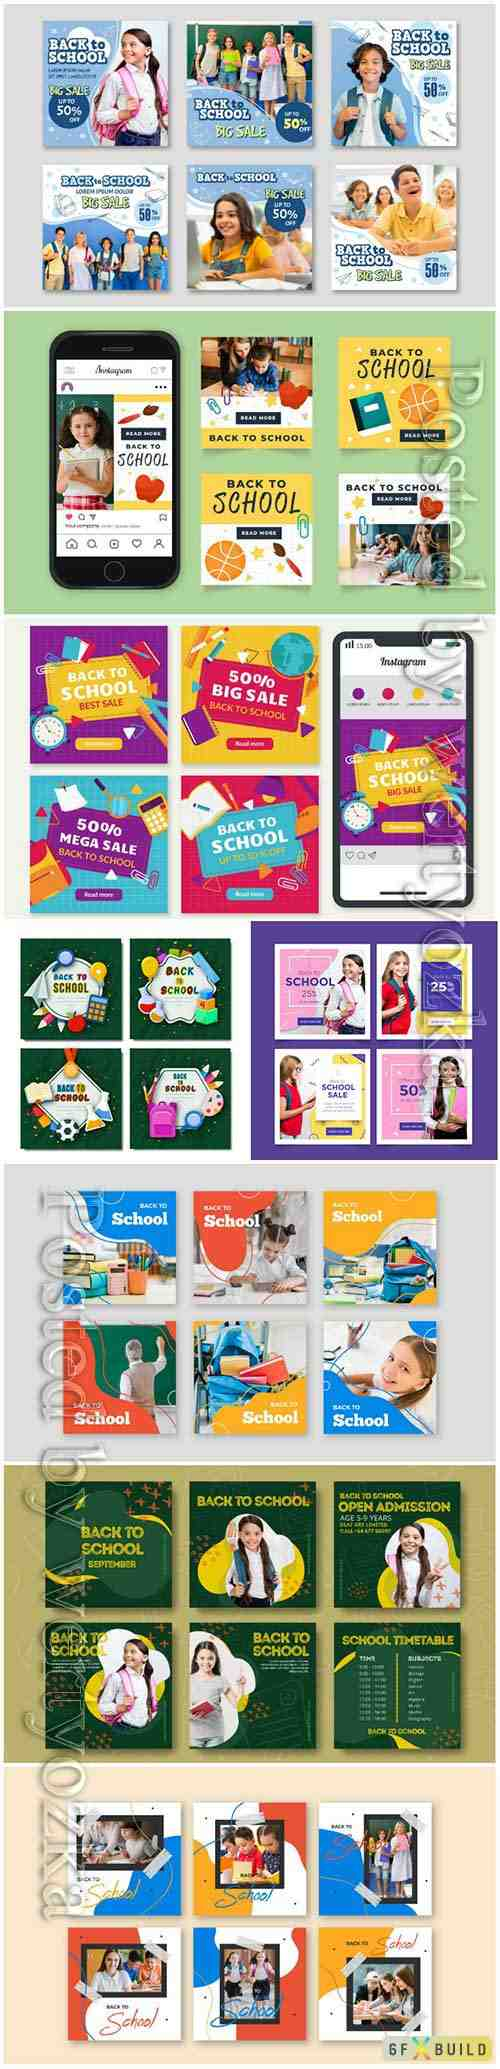 Hand drawn back to school instagram post collection vector illustration